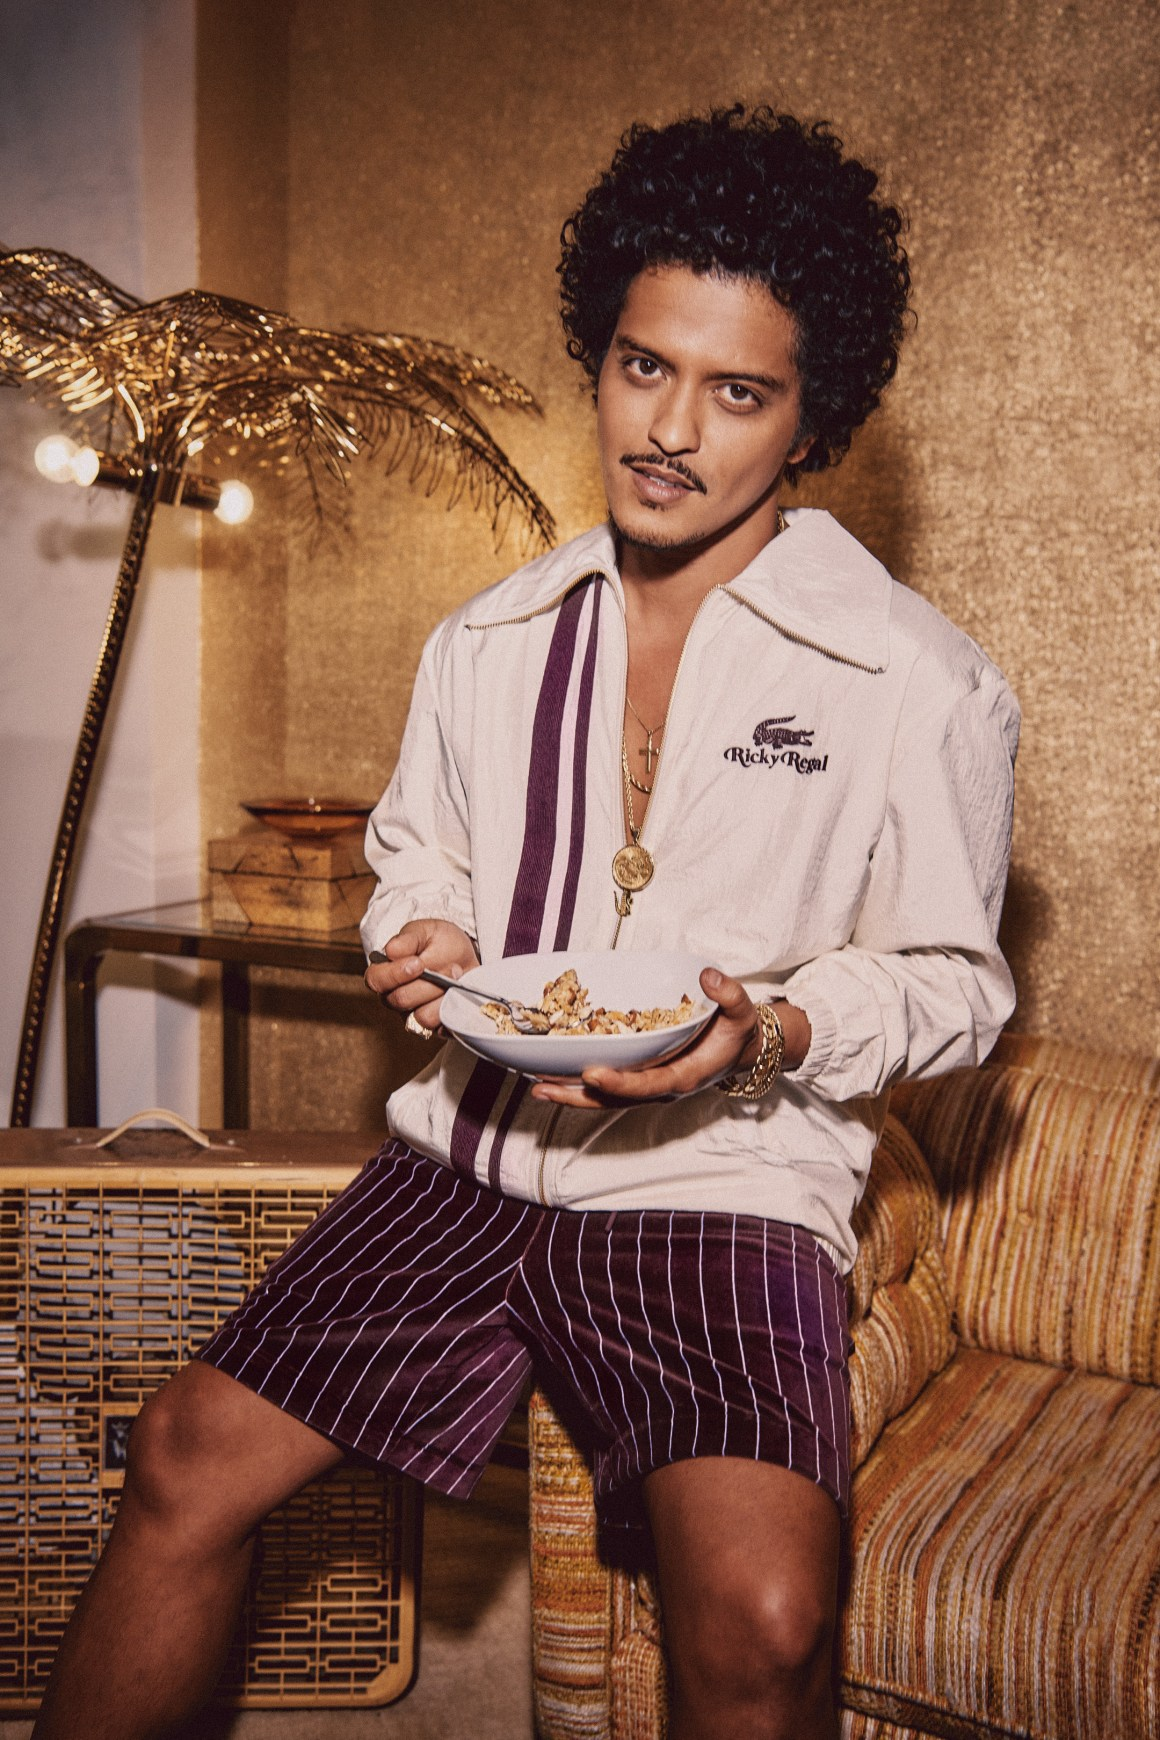 Bruno Mars reveals his first collaboration with the launch of Ricky Regal x Lacoste.